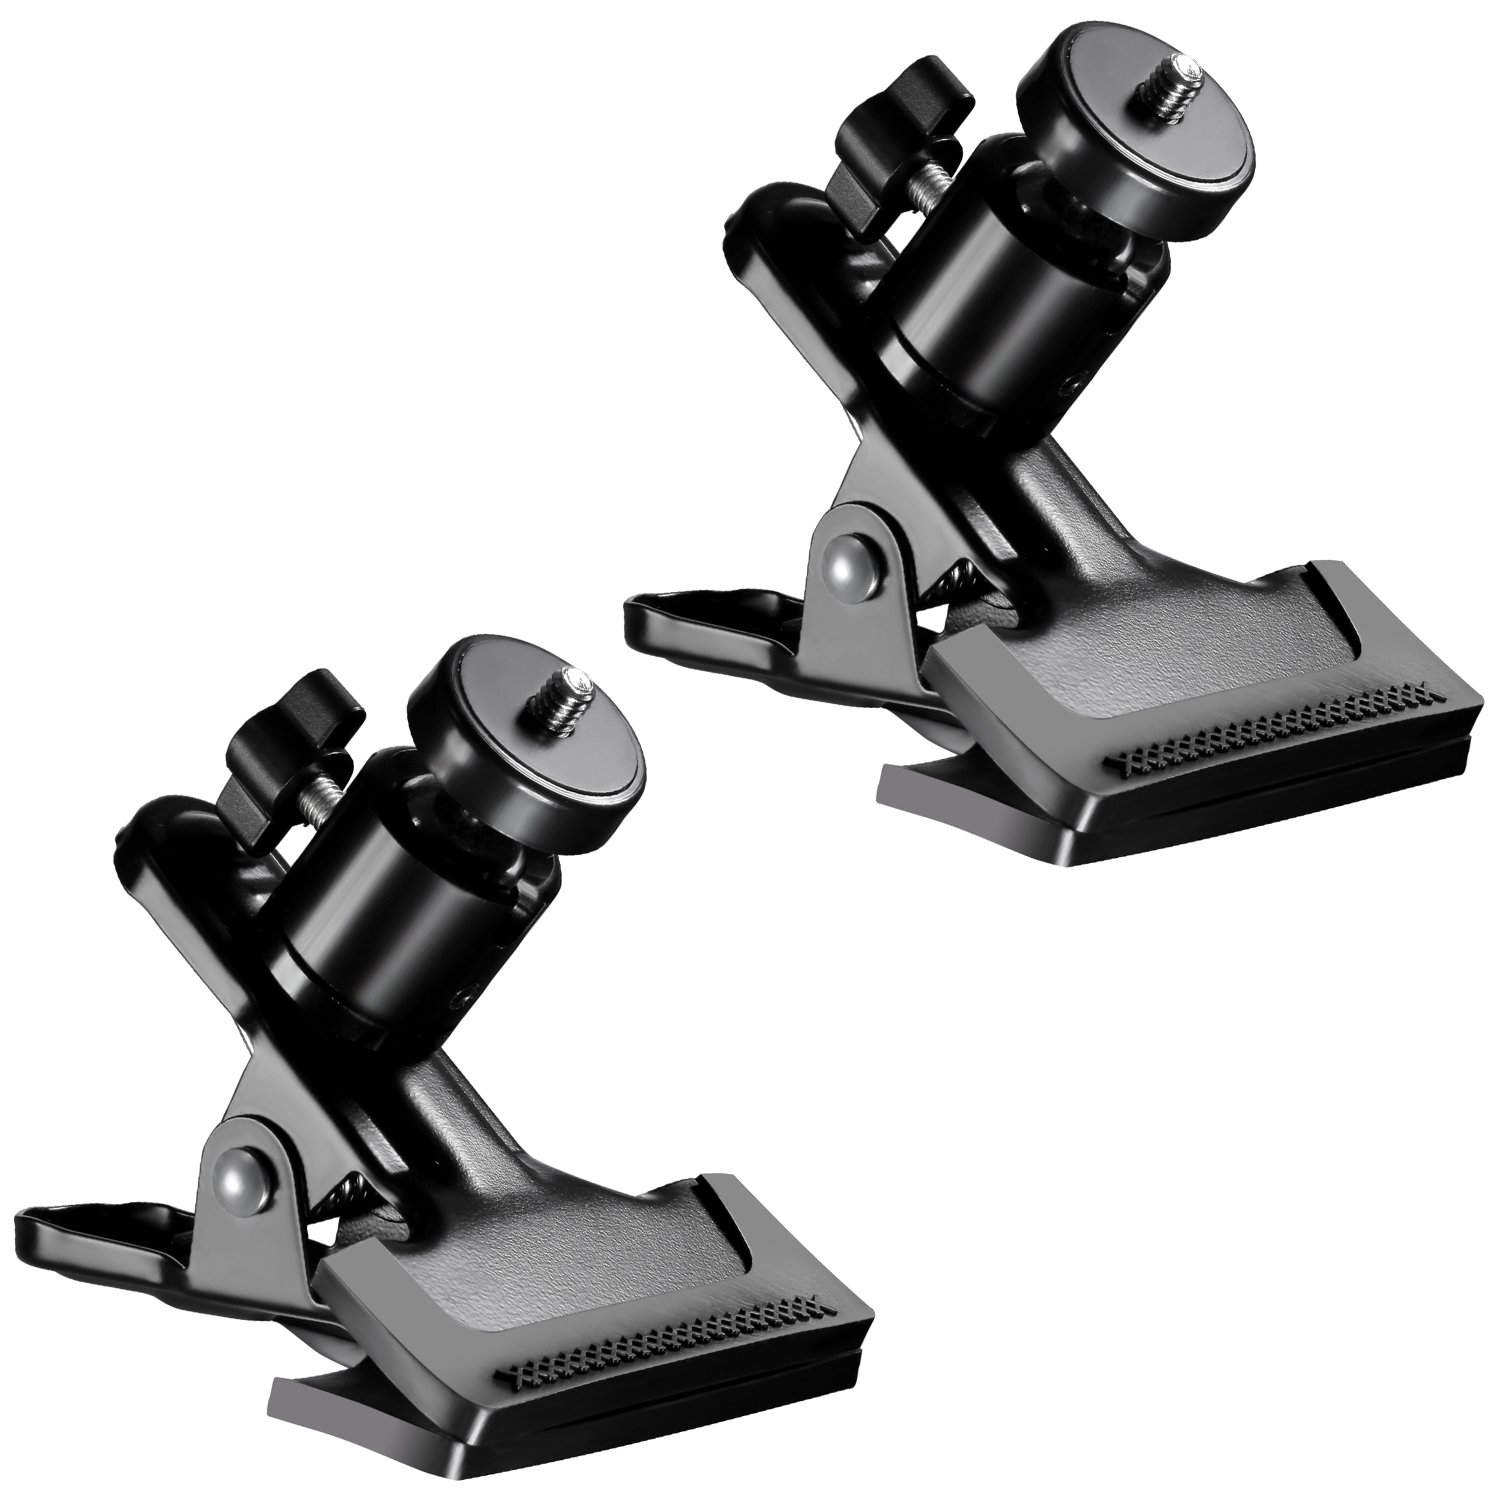 Neewer® 2 Pack Multi-function Spring Clamp Clip Holder Mount with Ball Head Standard 1/4'' Screw for Gopro,SLR, Digital SLR, Video Cameras by Neewer